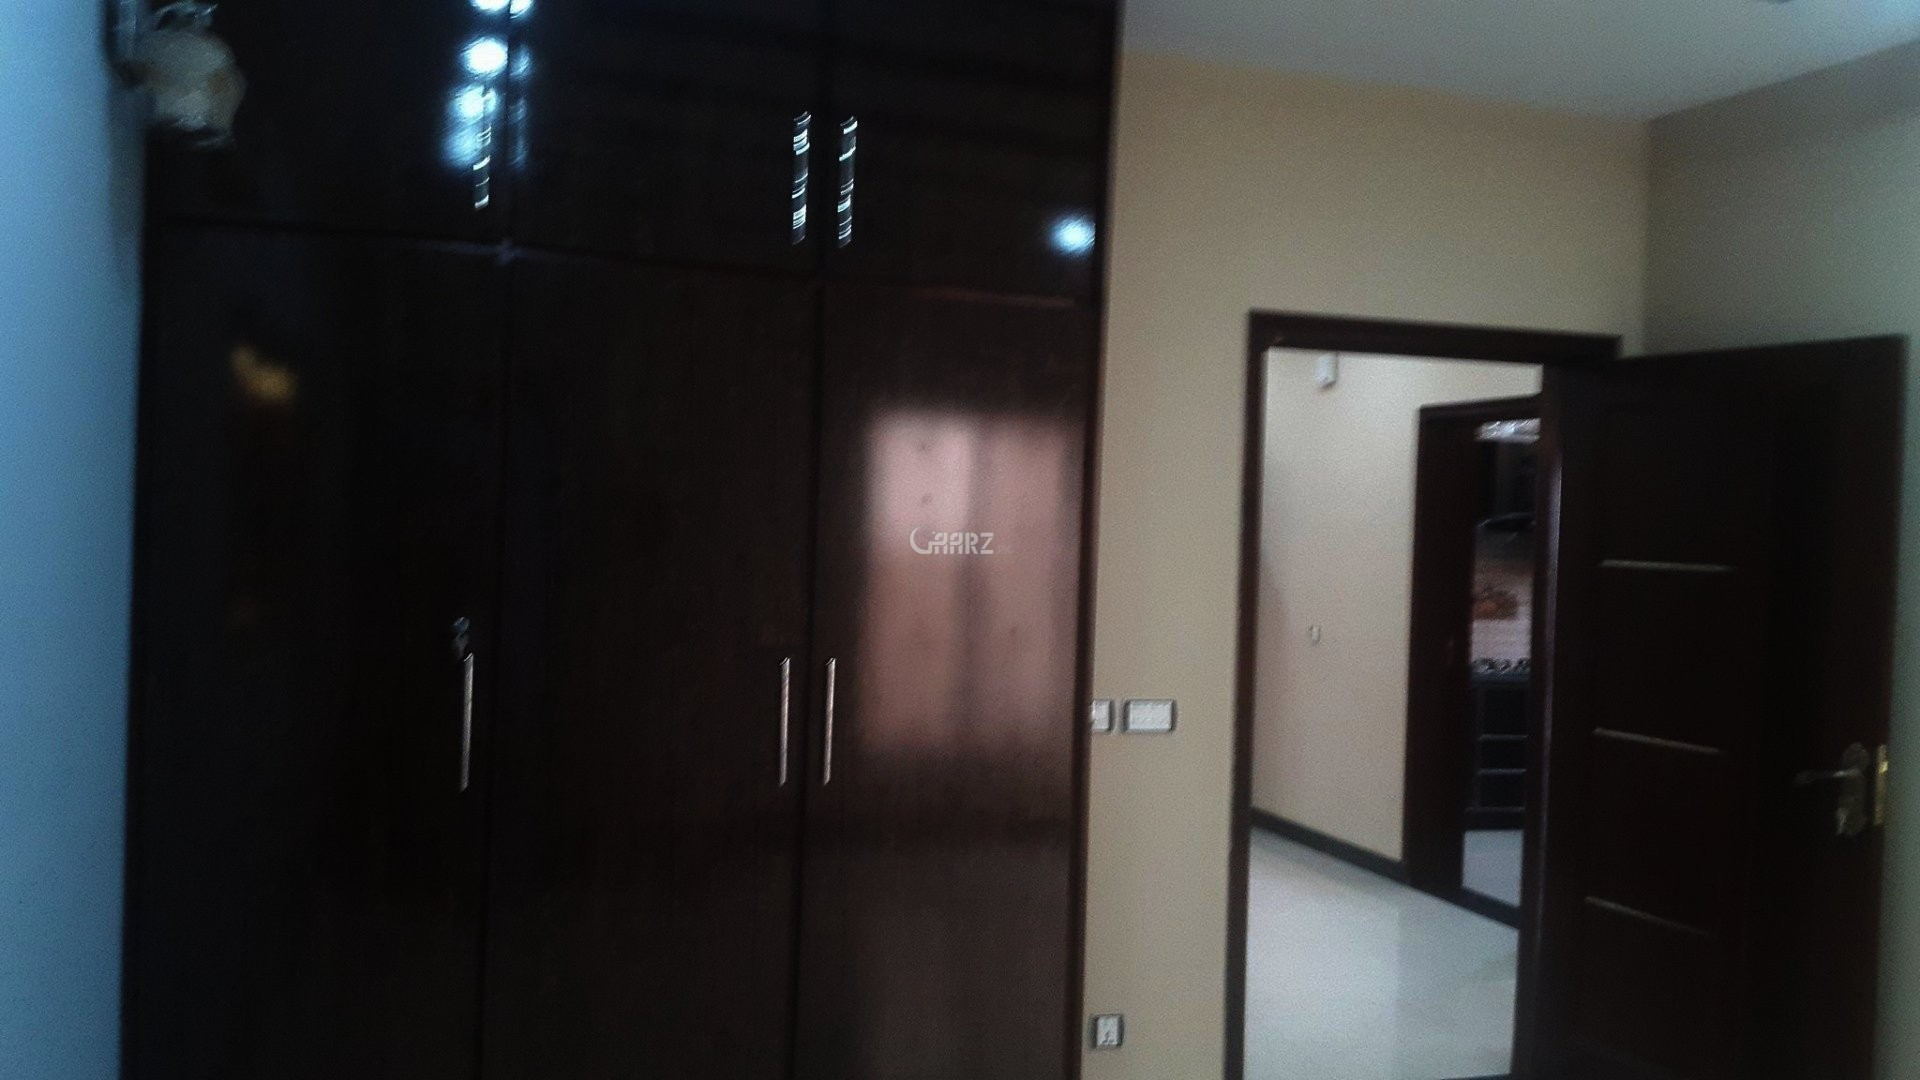 10 Marla House For Rent In Wapda Town, Lahore